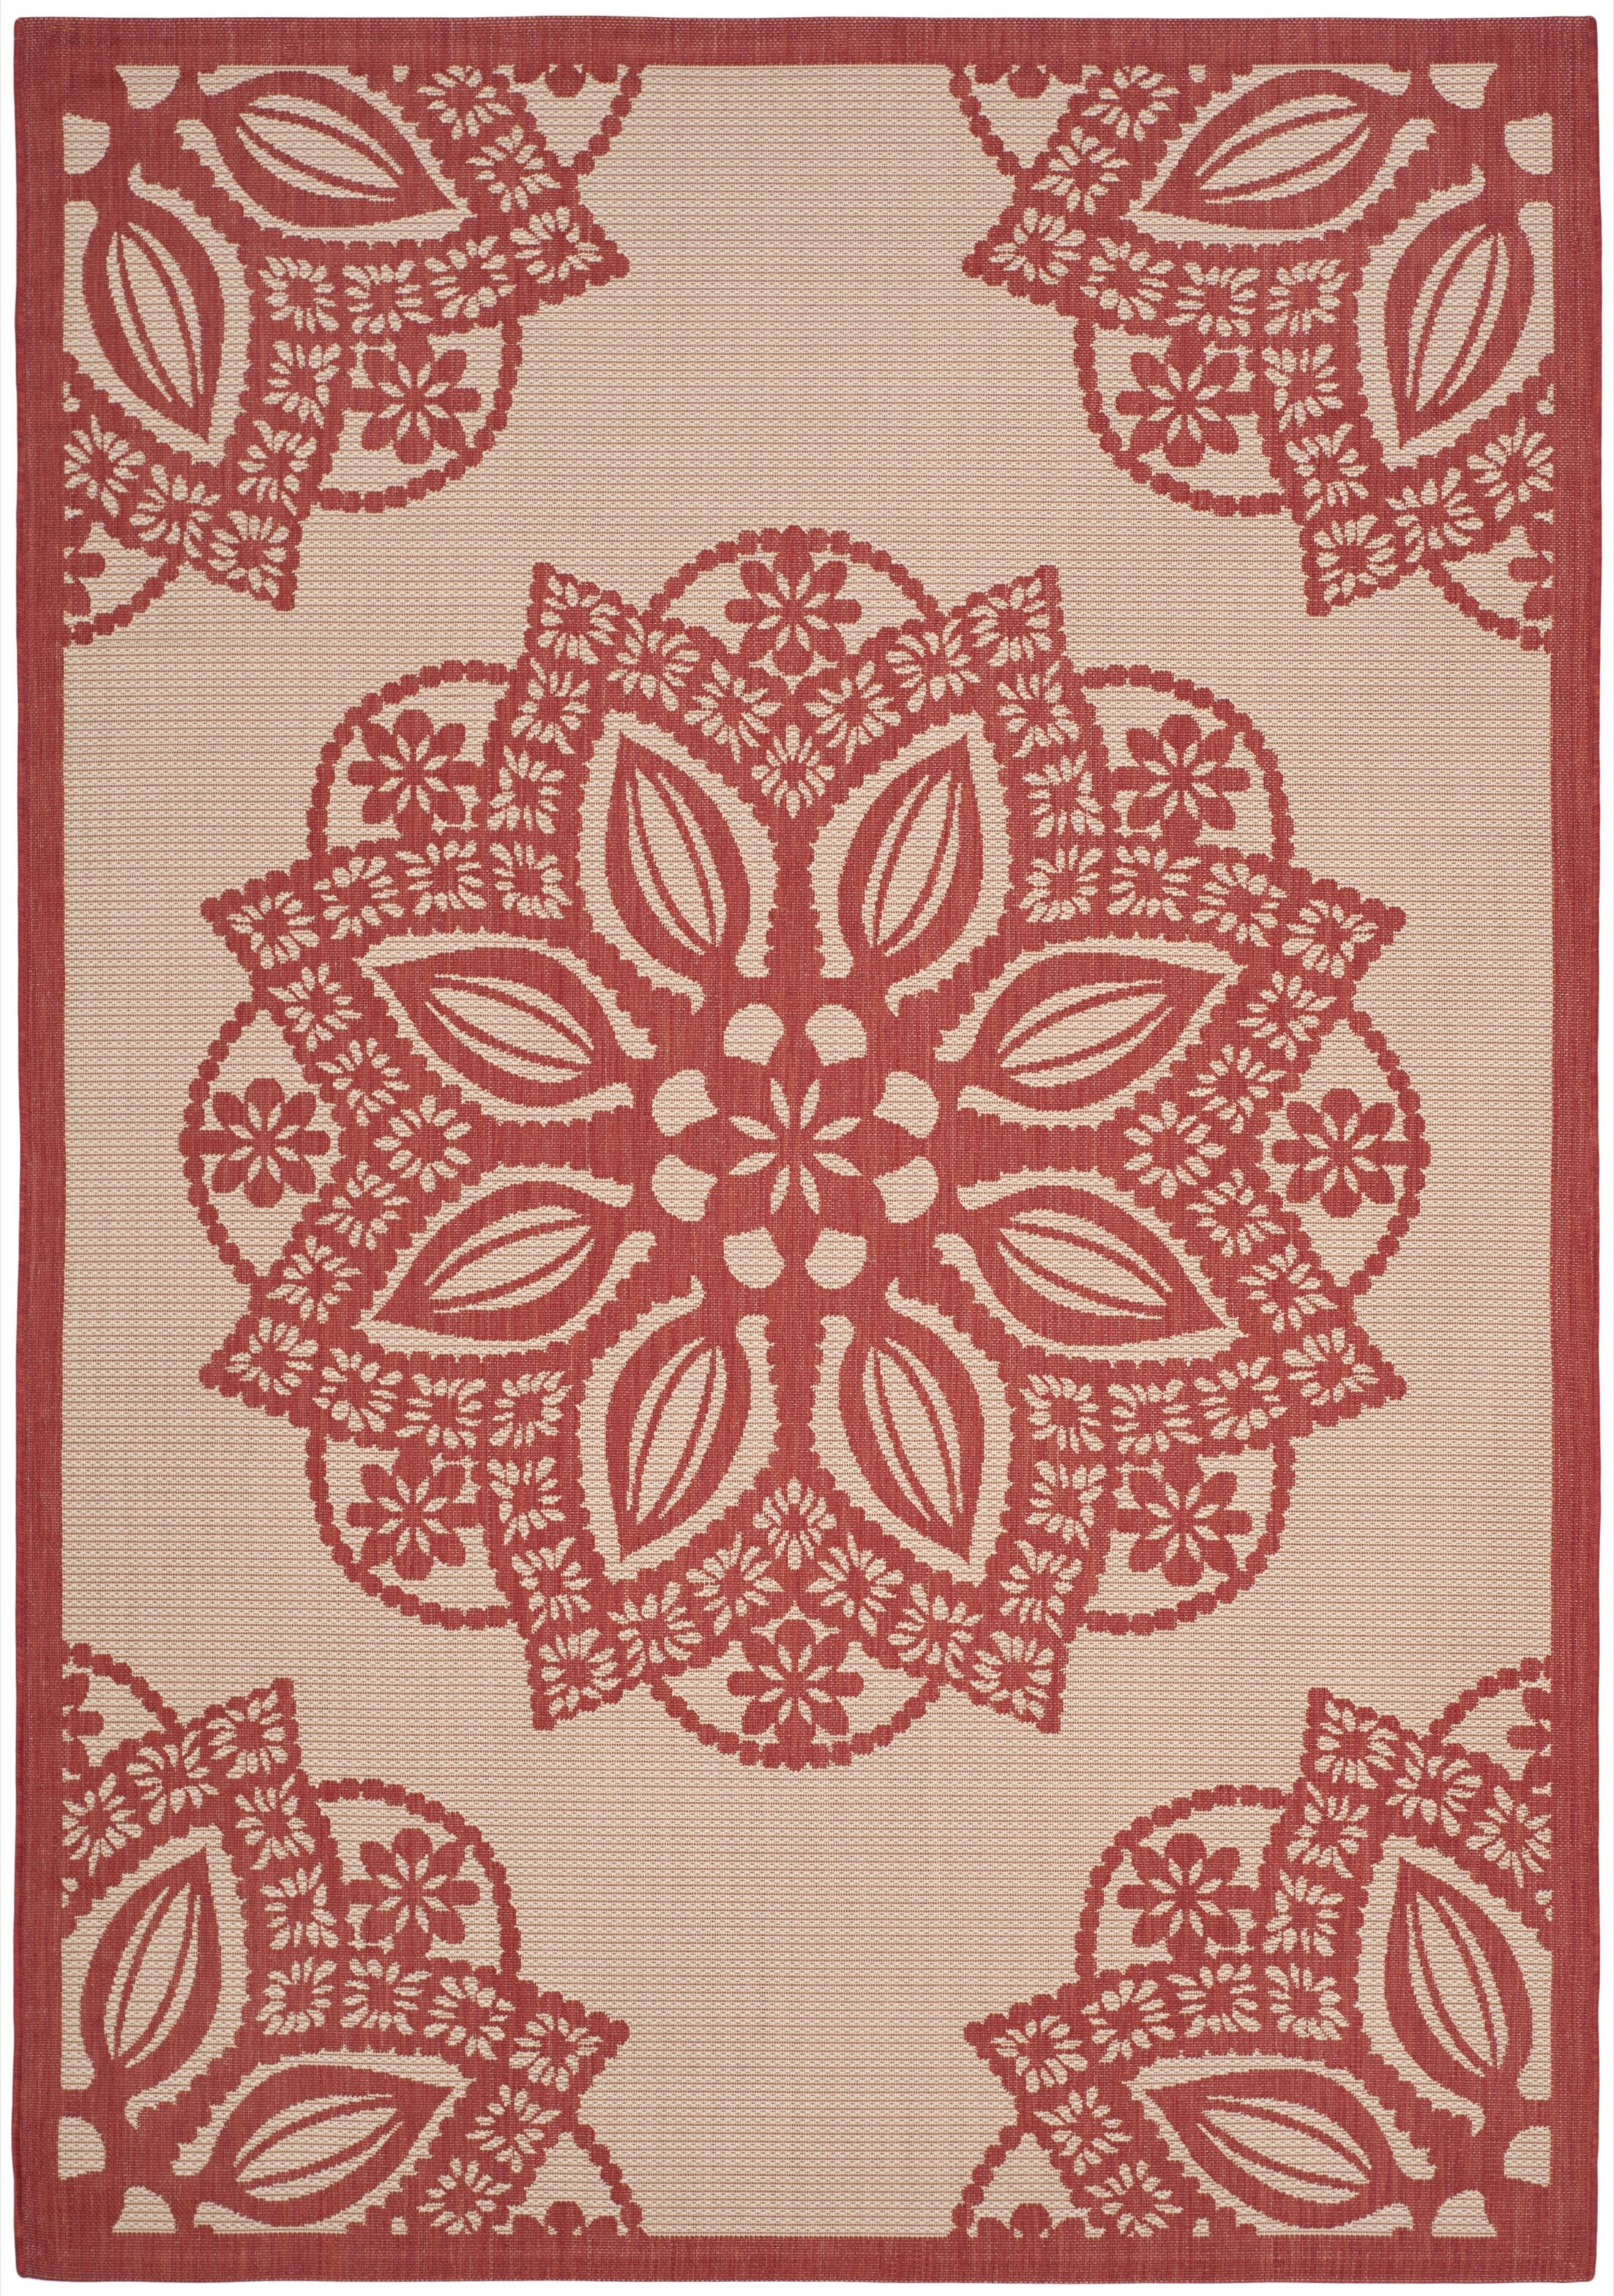 Lauber Beige/Red Area Rug Rug Size: Rectangle 8' x 11'